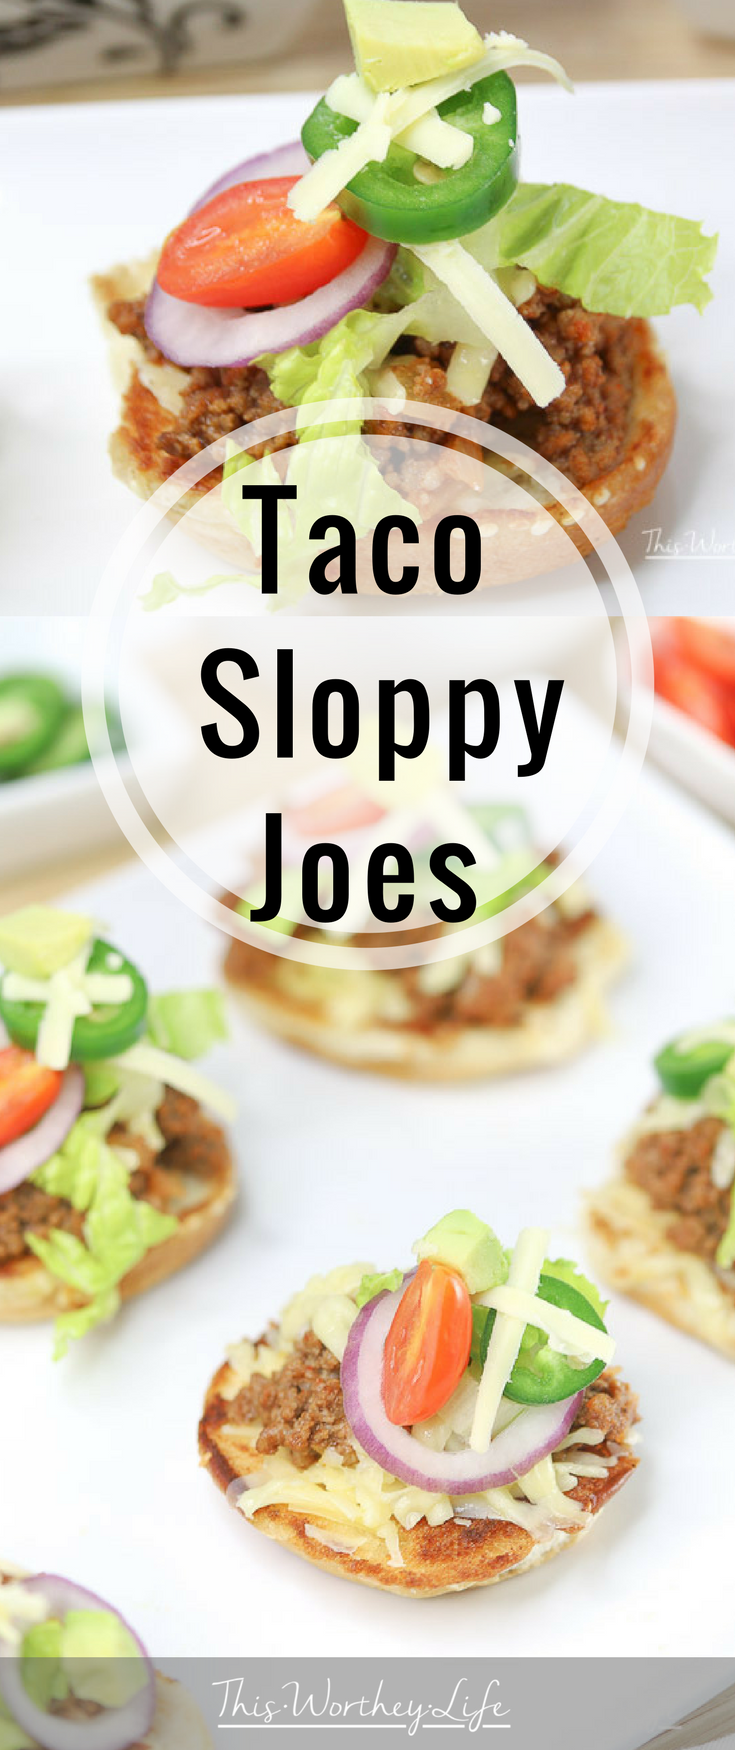 Slider recipes are pretty popular around here. We mixed our regular tacos and sloppy joes' to make Taco Sloppy Joe Sliders. They were a huge hit at our game day party, plus they are easy appetizers to make for any type of party or dinner! Grab the taco sloppy joe sliders recipe on the blog!